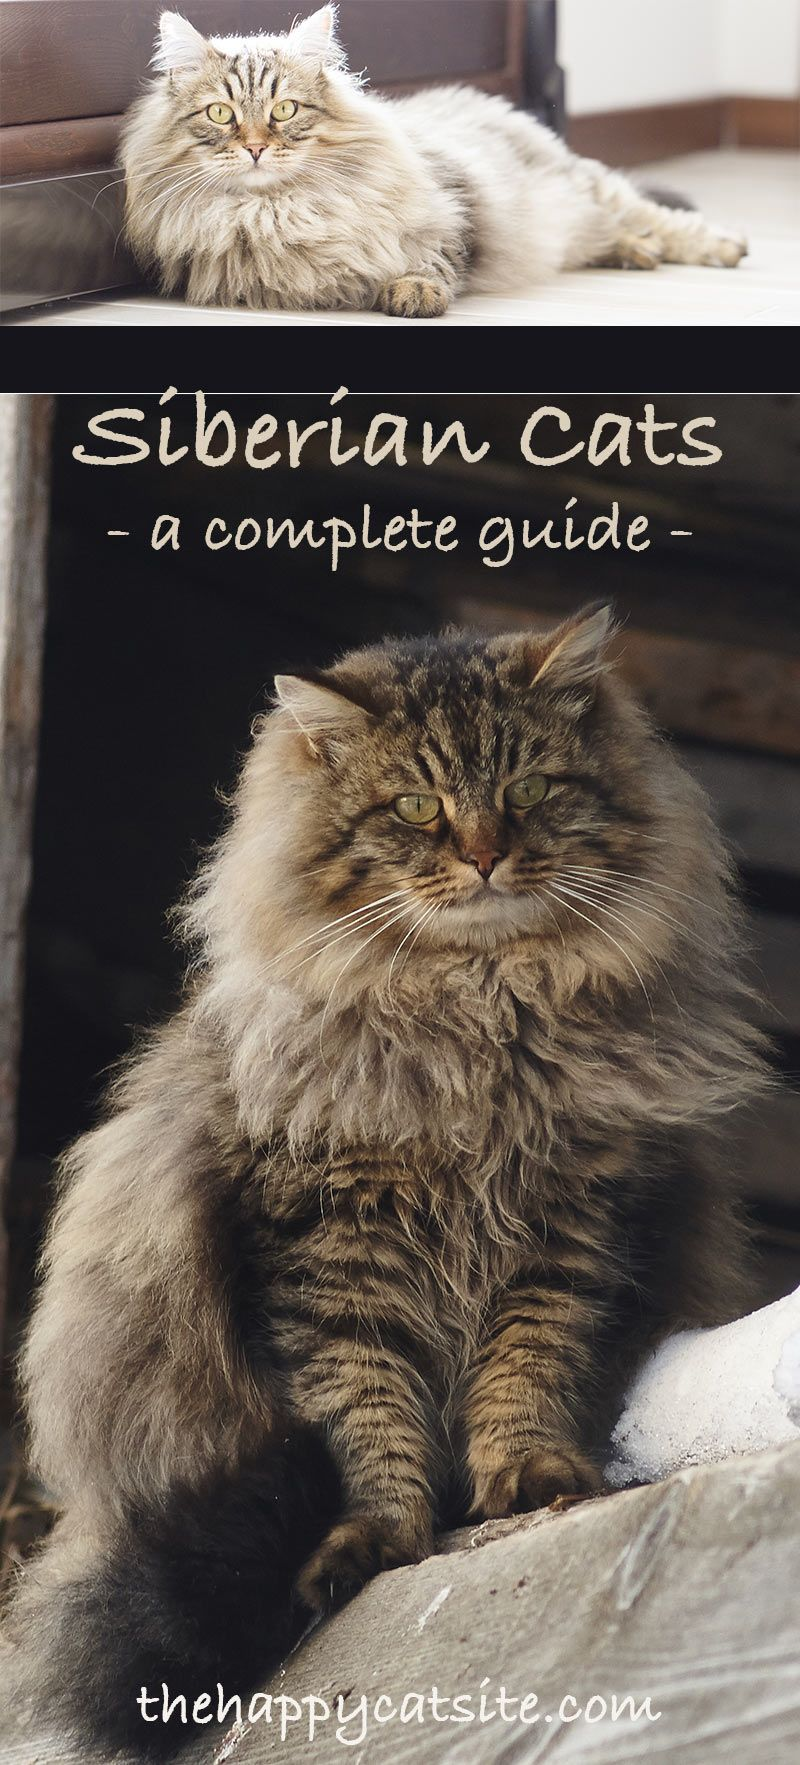 Siberian Cat A Complete Guide To The Unique Siberian Forest Cat Siberian Forest Cat Siberian Cat Siberian Forest